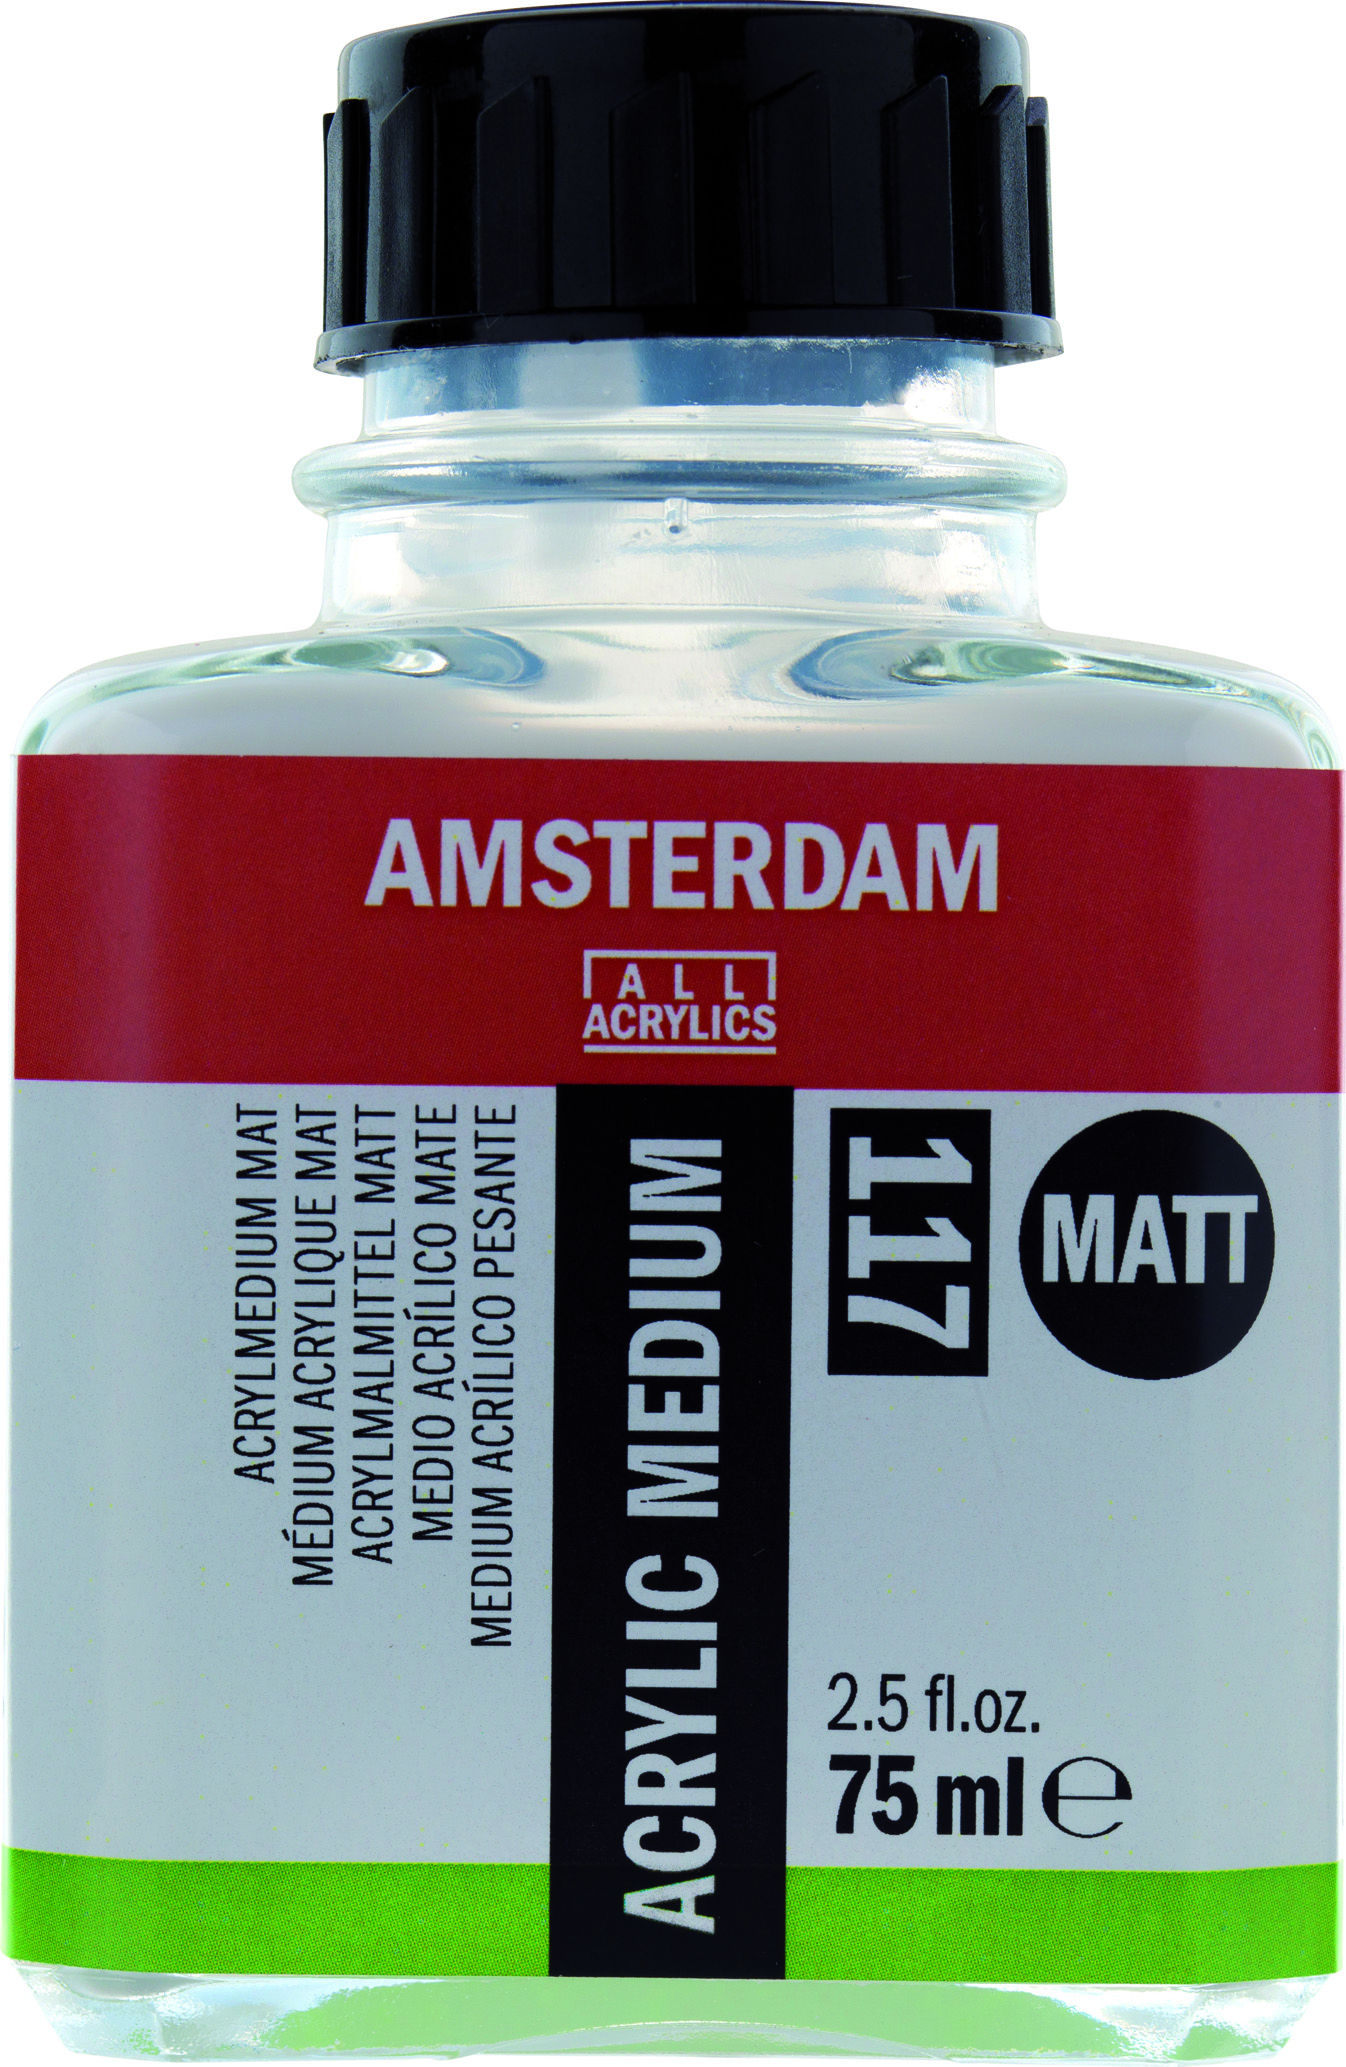 AMSTERDAM ACRYLIC MEDIUM MATT 117 75 ML